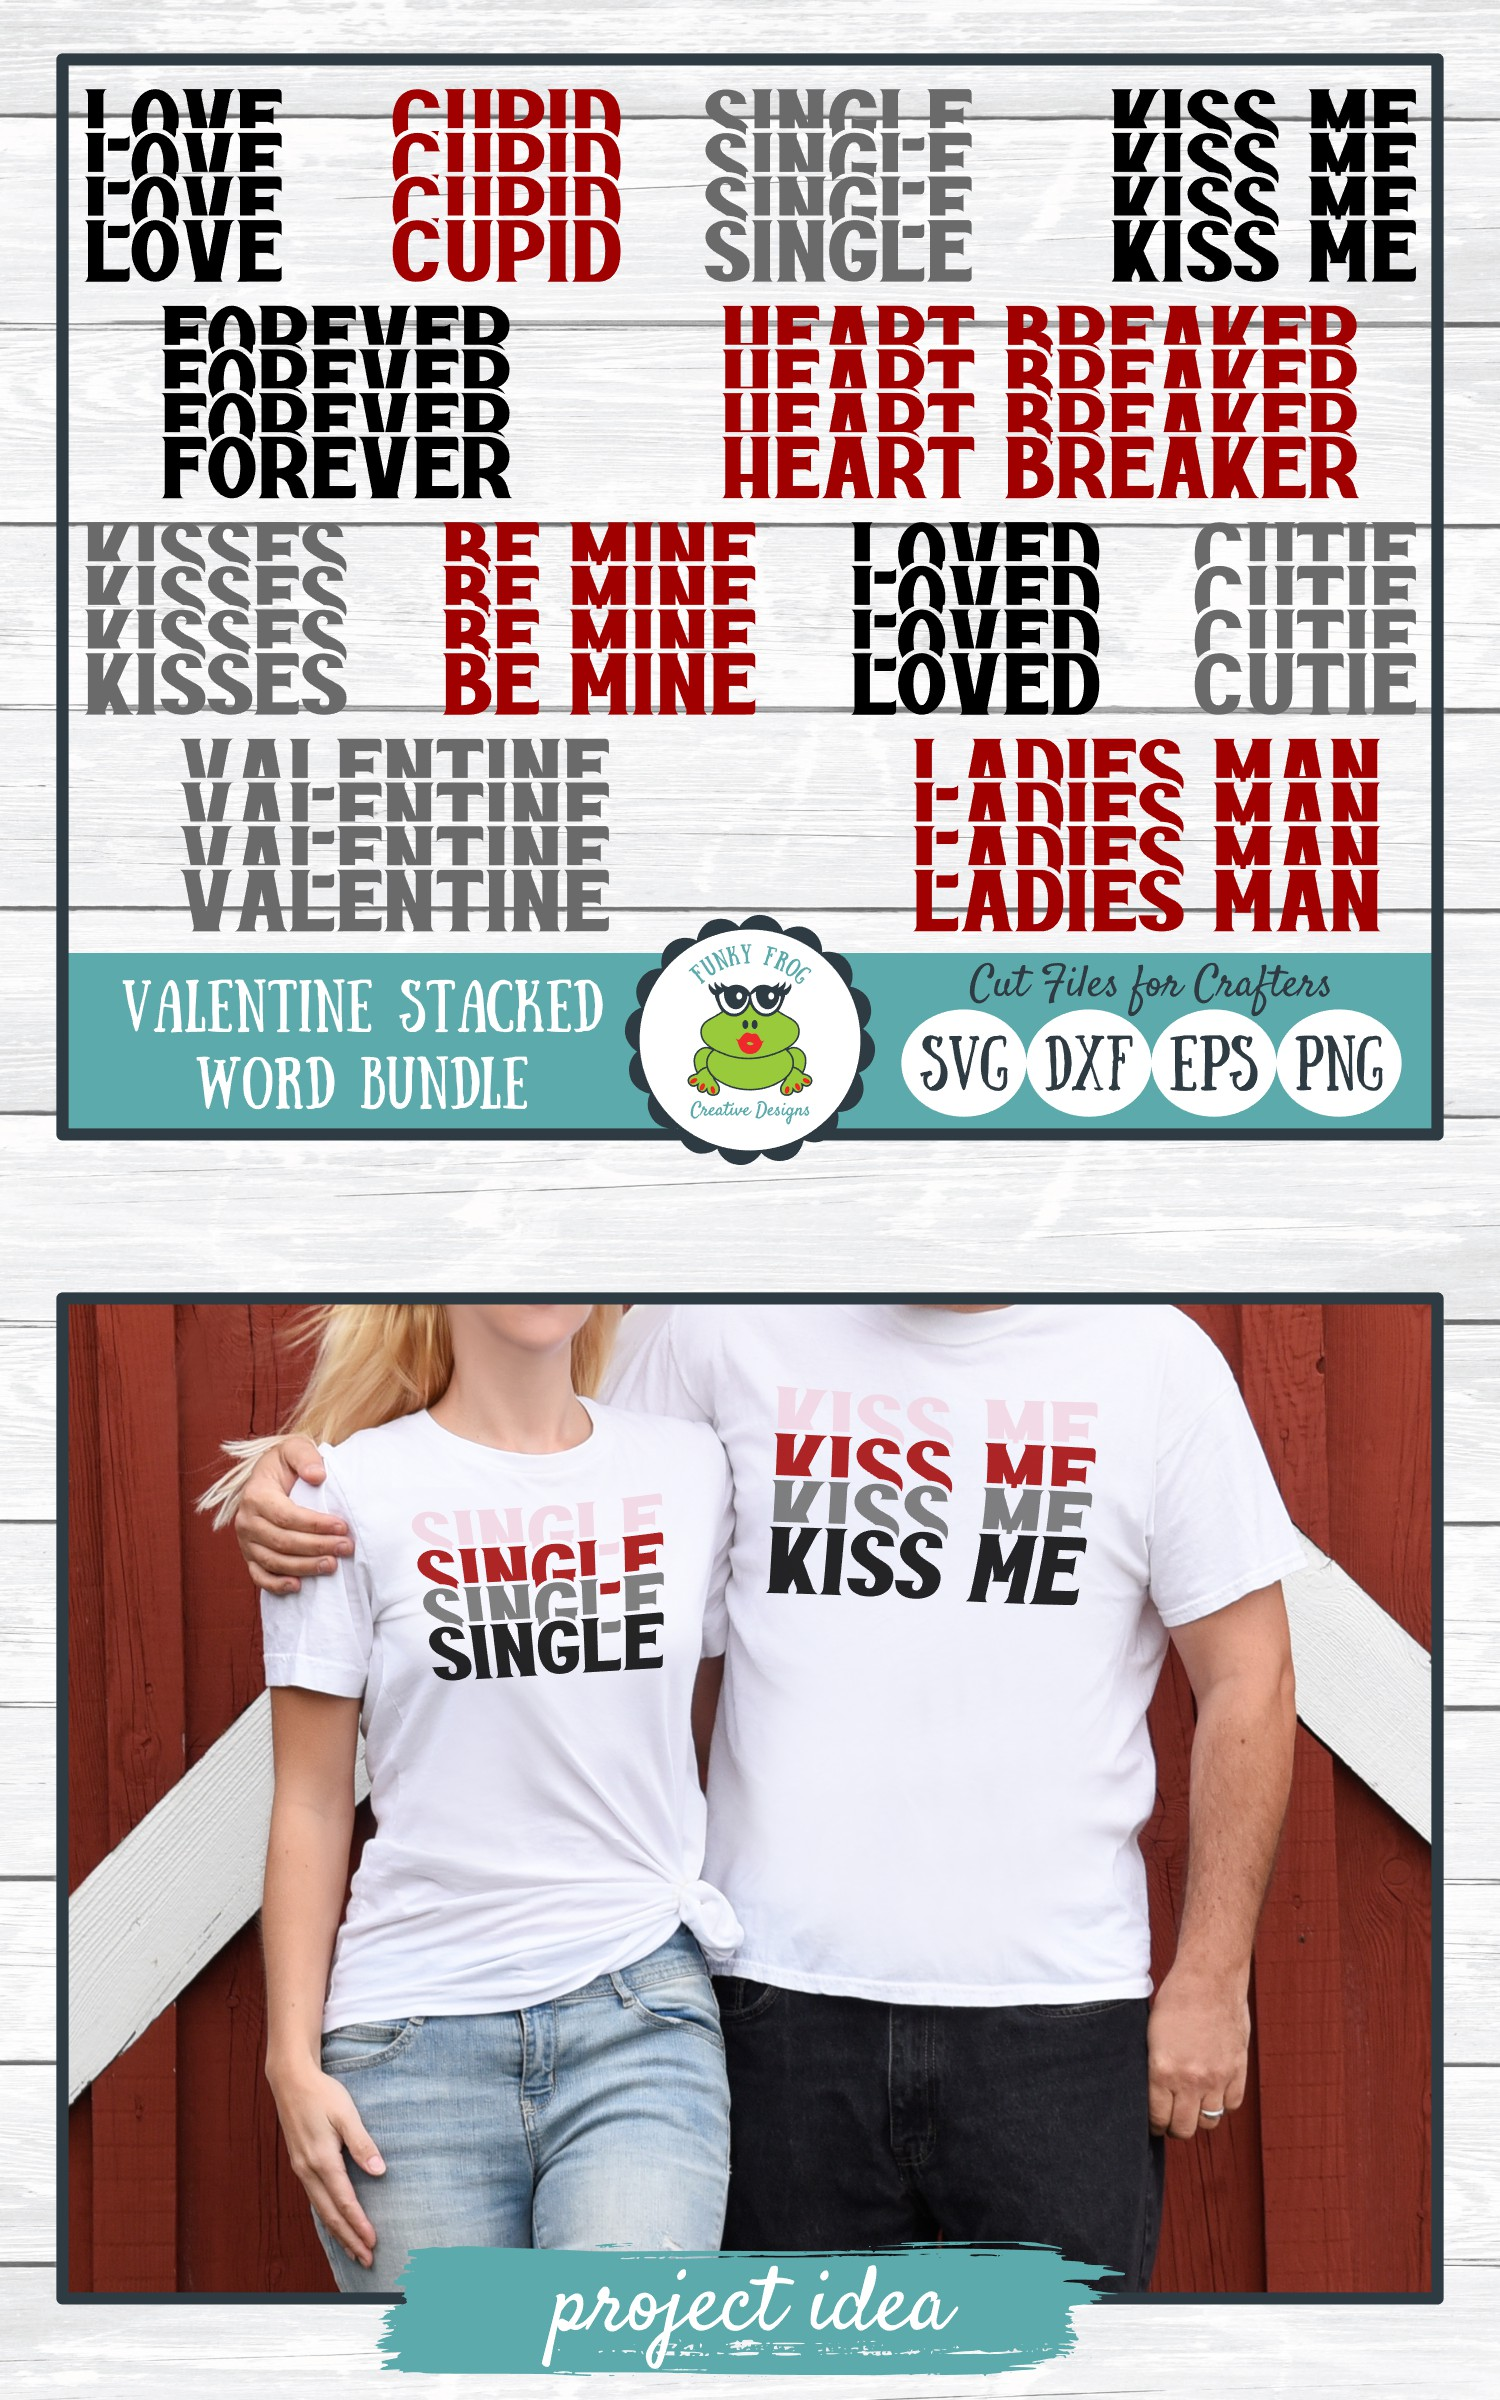 Valentine Stacked Word Bundle, SVG Cut Files for Crafters example image 6